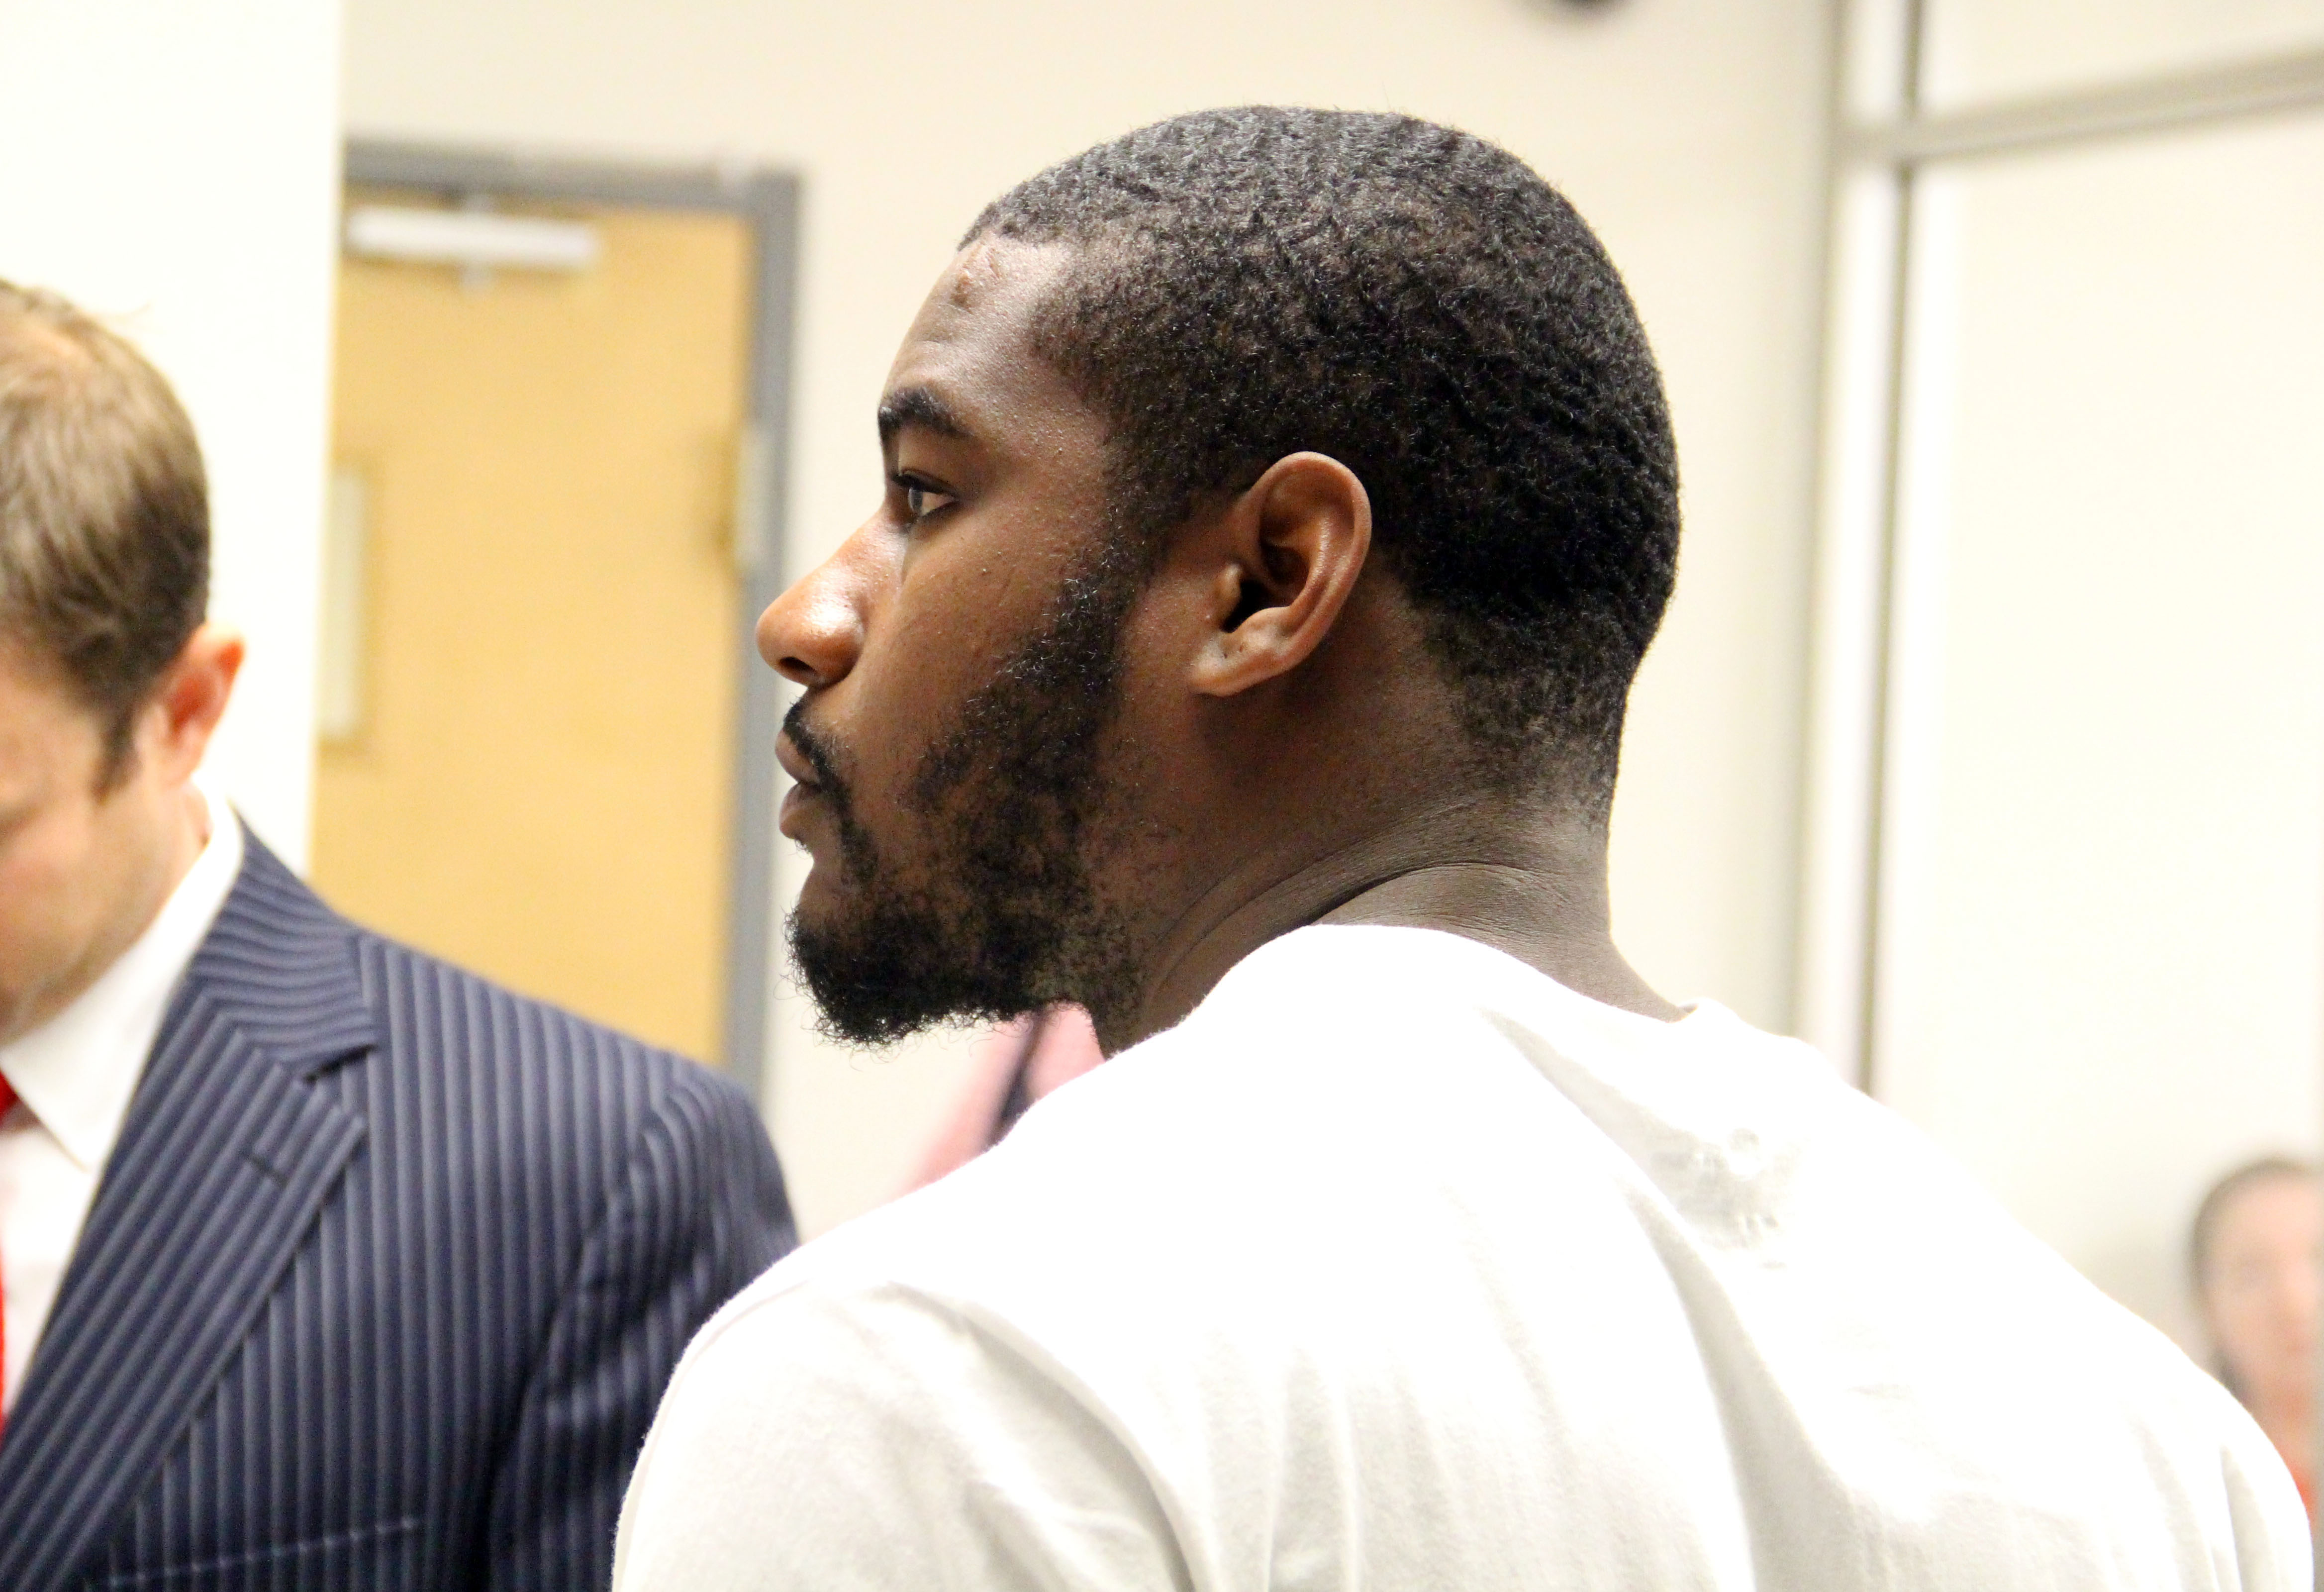 Marshall RB charged in beating of 2 gay men, kicked off team